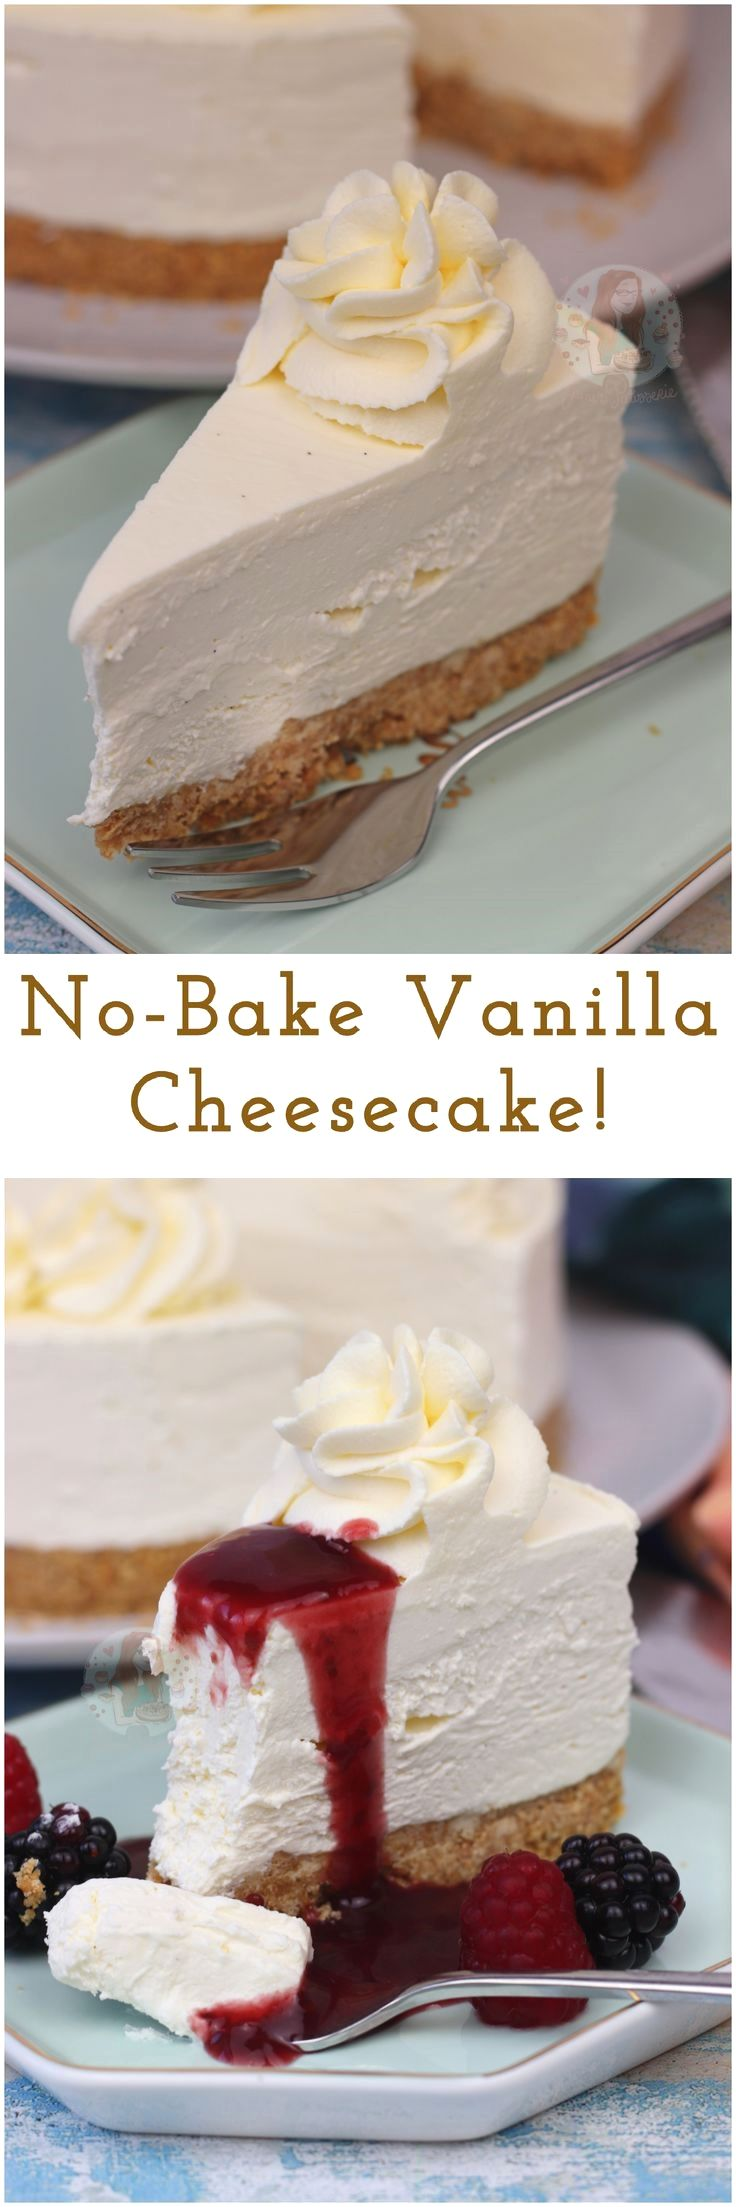 Pin by Marjorie Summers on No Bakes | No bake vanilla cheesecake. Cream cheese recipes. Cheesecake recipes